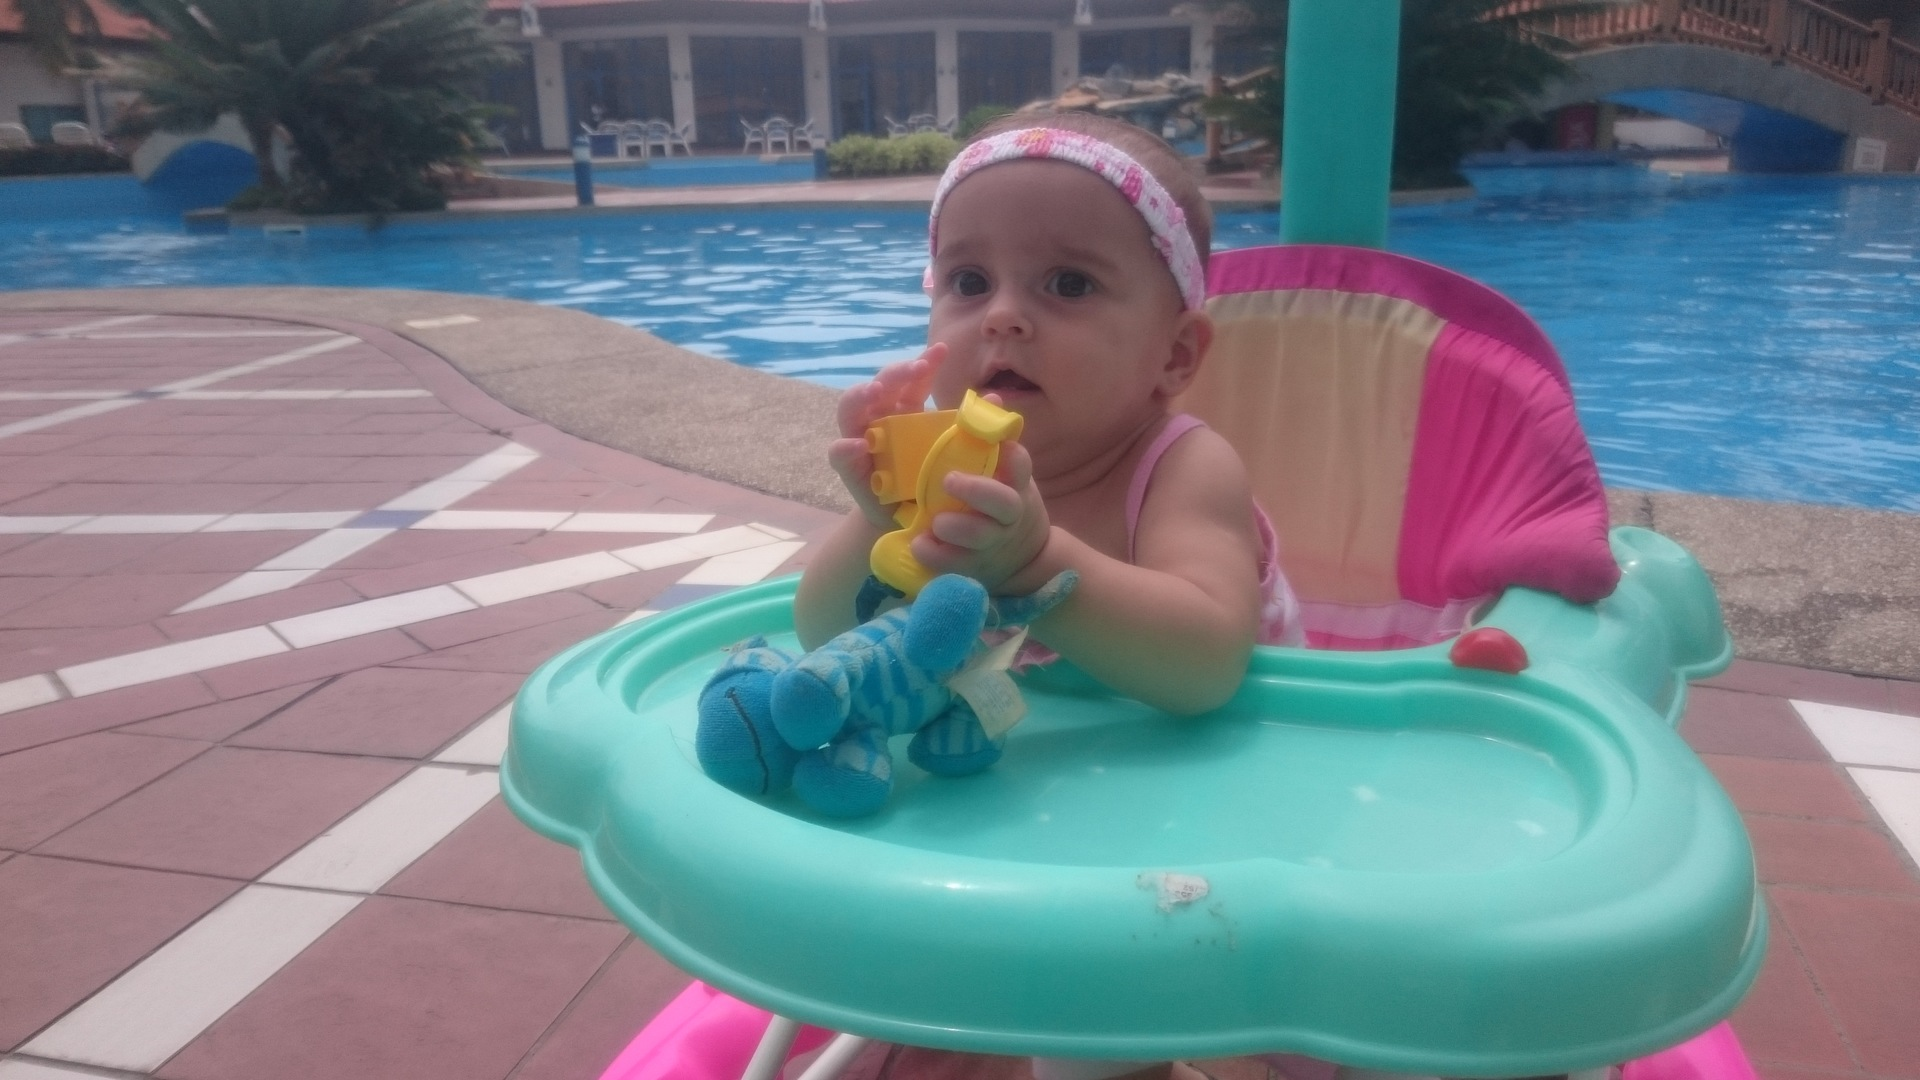 Foap cute toddler at poolside baby girl in walking chair by